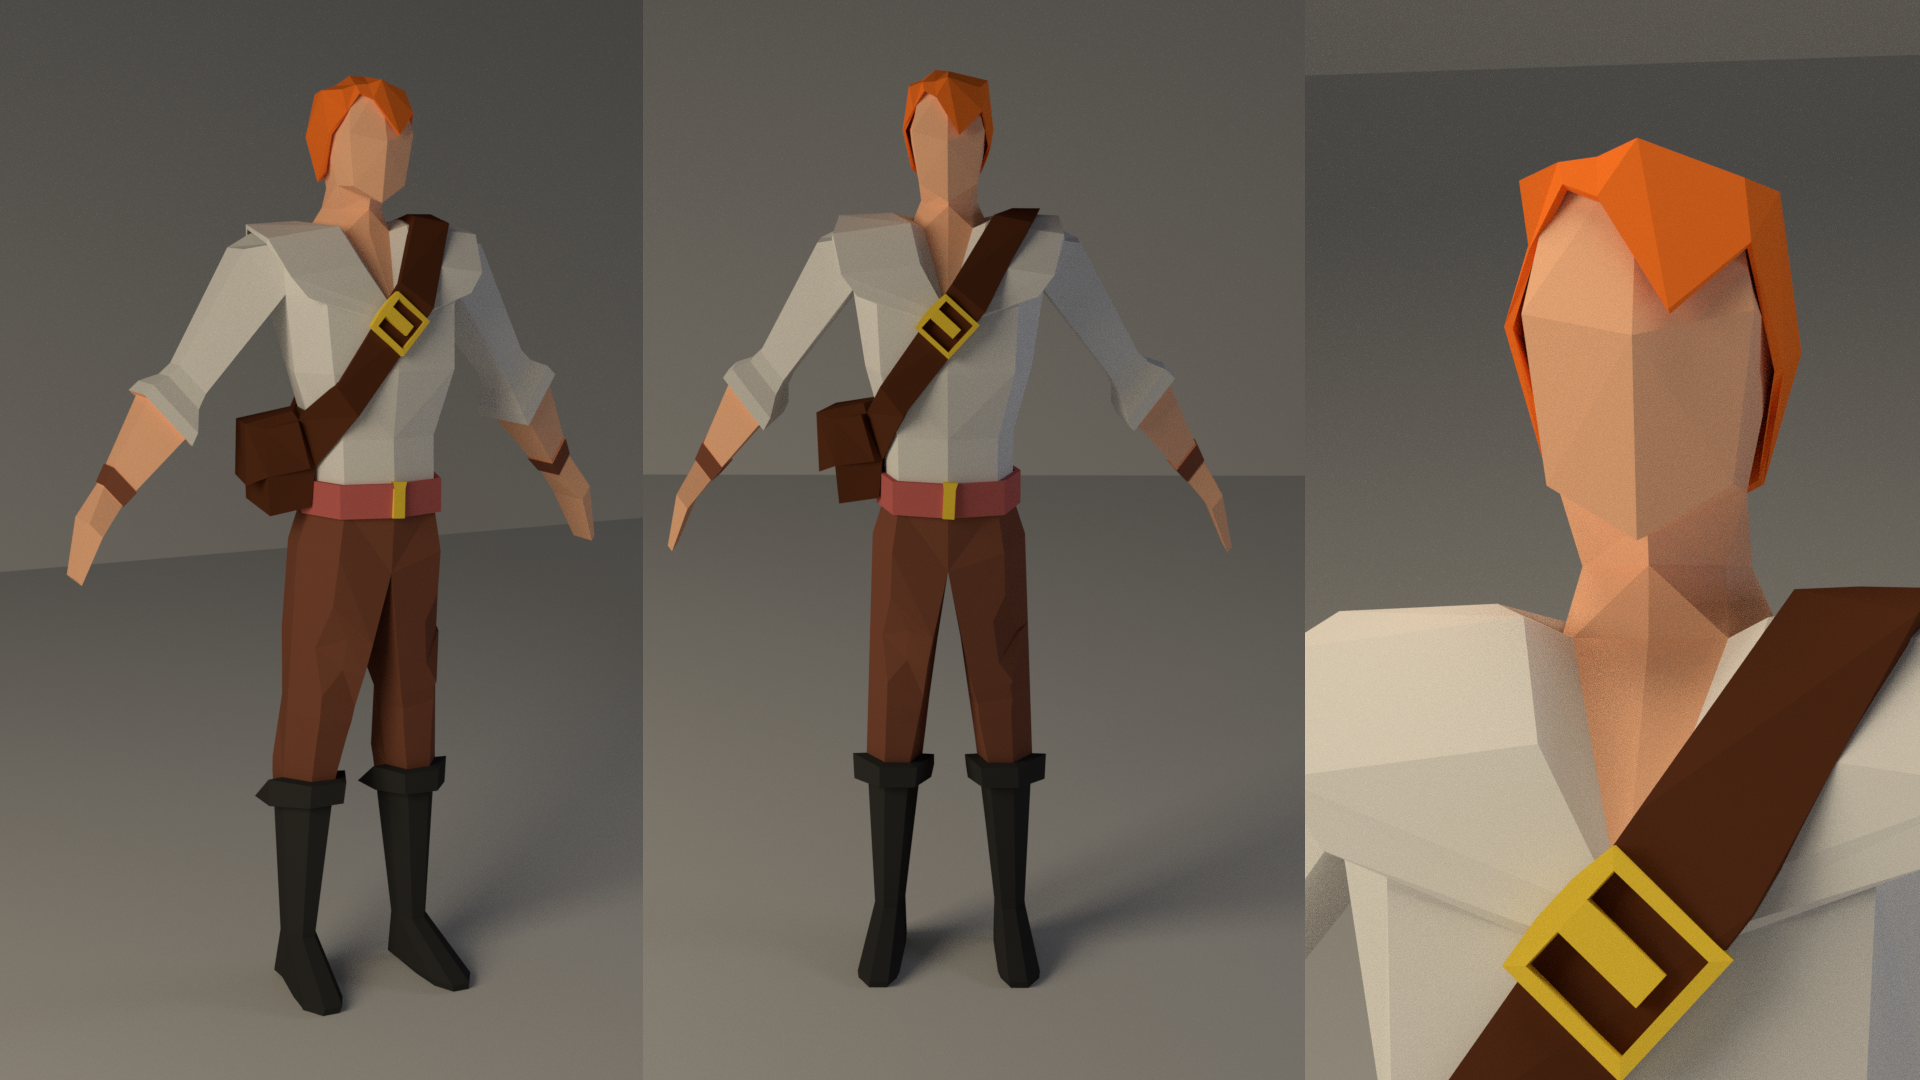 Pin by Brandon Hill on Low Poly Low poly character, Low